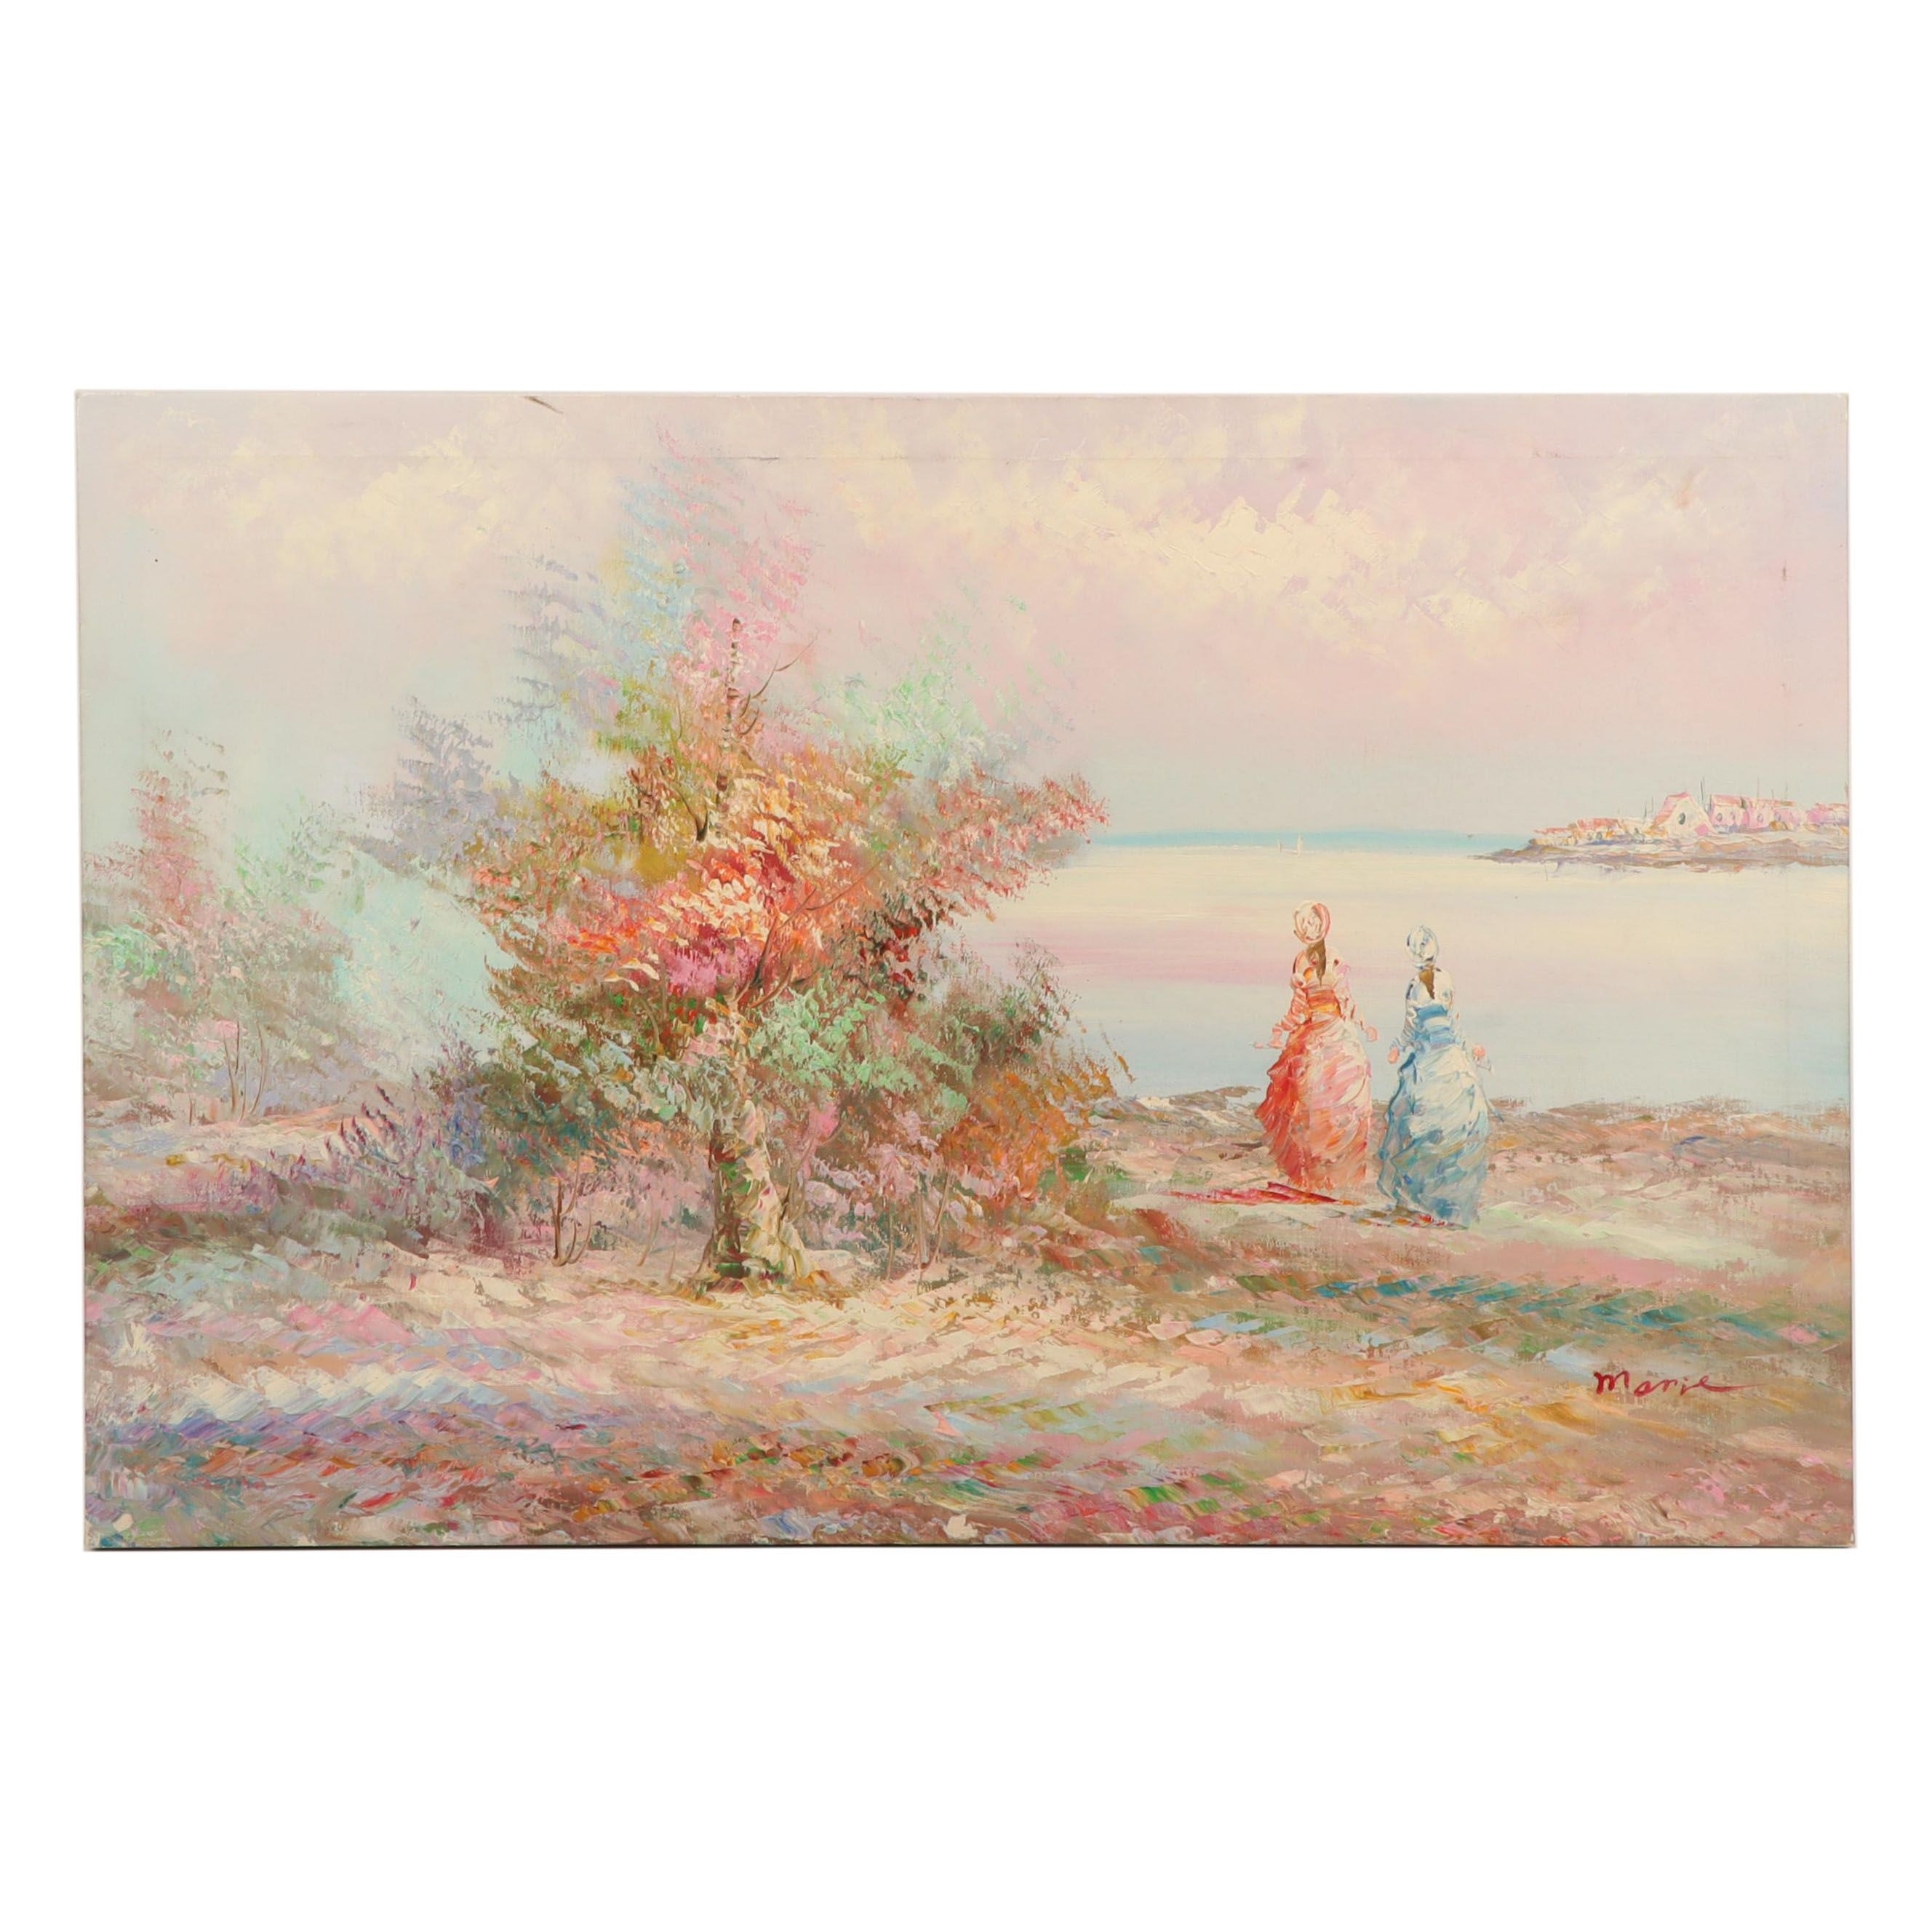 Impressionist Style Oil Painting of Women at Shore